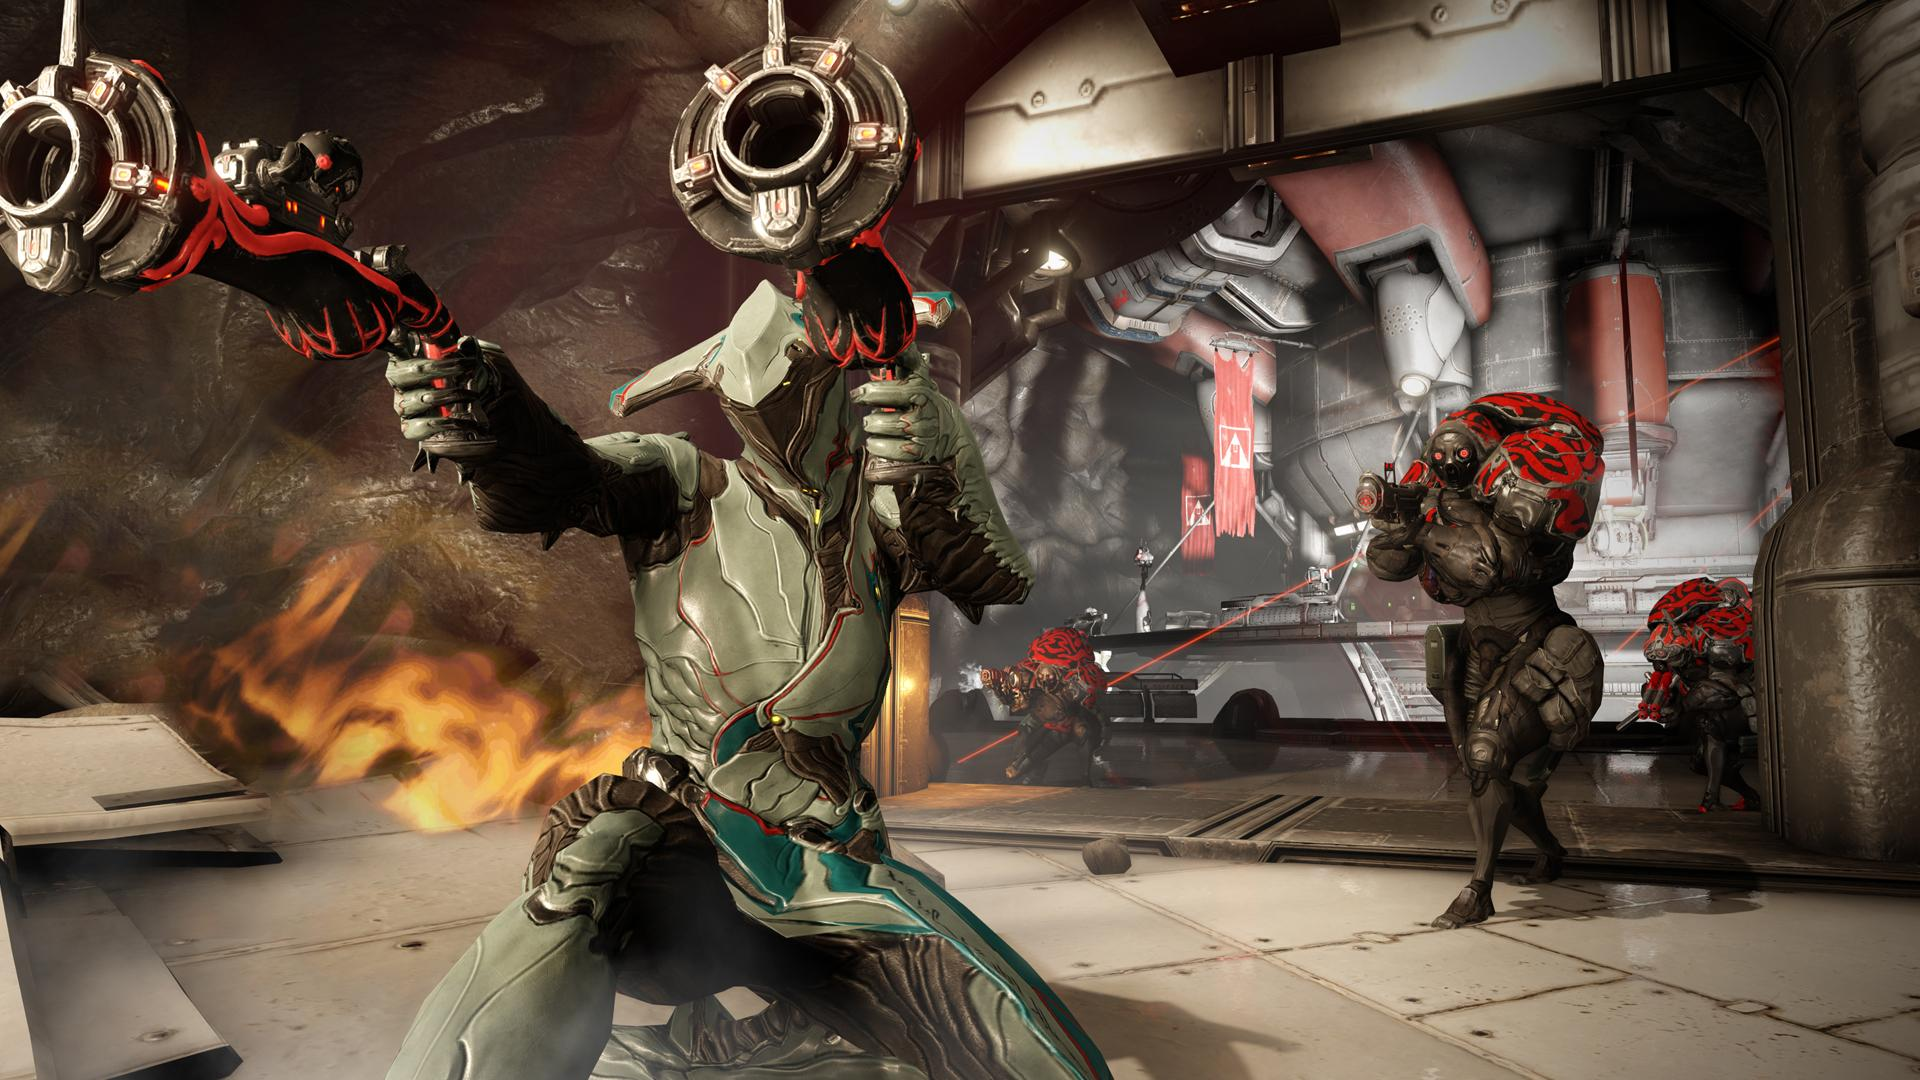 Warframe is a fast-paced sci-fi shooter with a heavy emphasis on melee and mobility